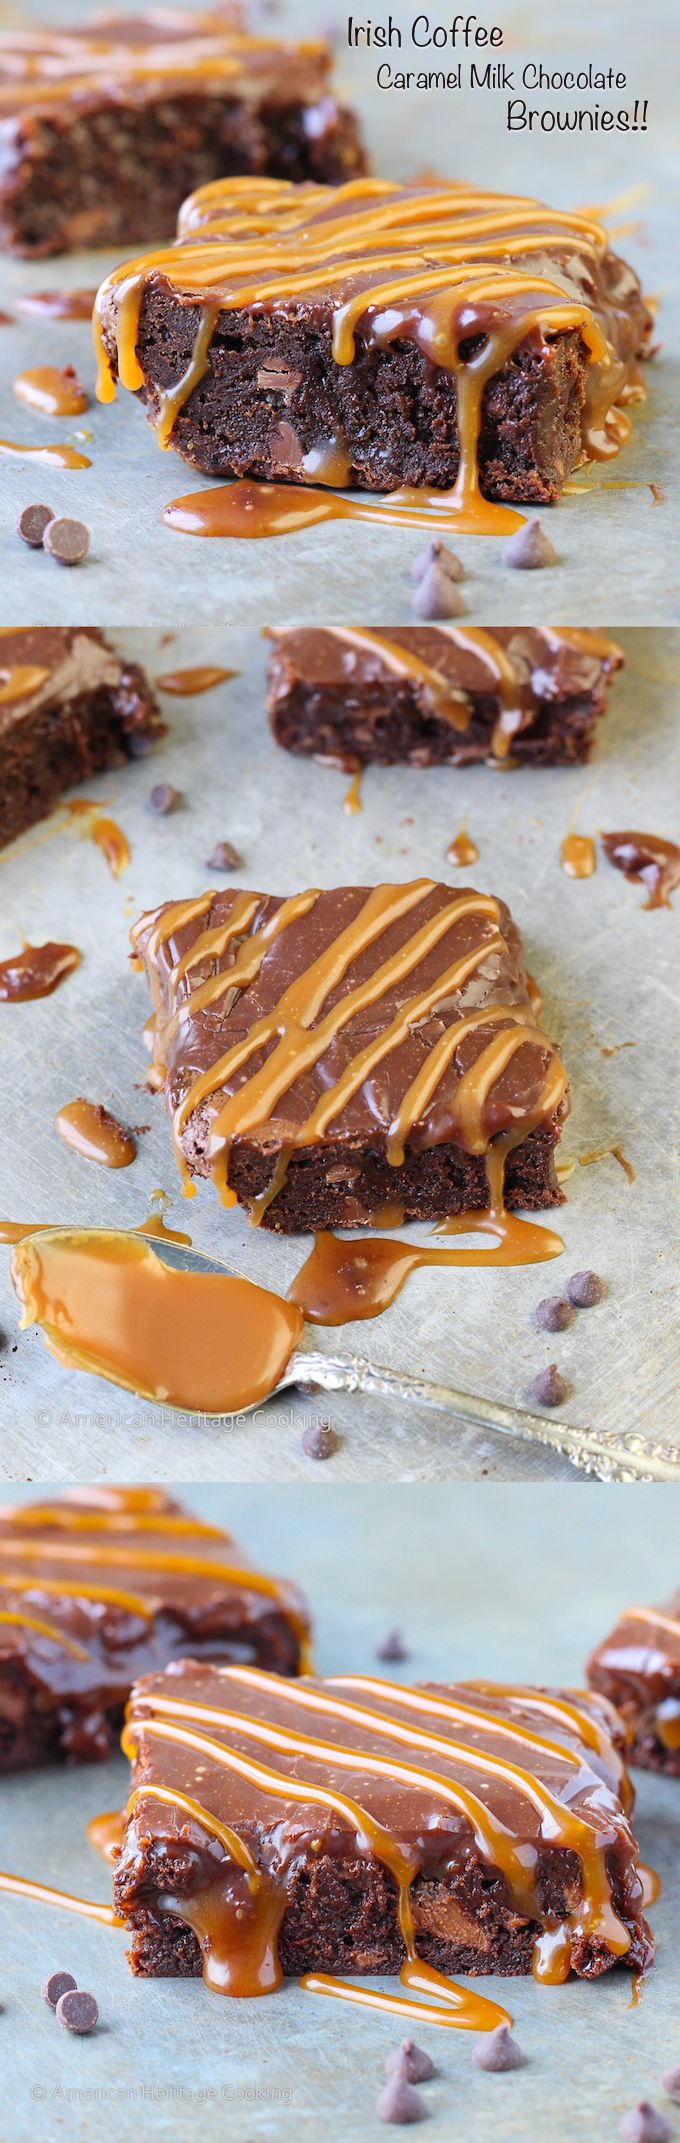 This Bailey's Irish Coffee Caramel Milk Chocolate Brownie is a decadent, fudgy double chocolate coffee brownie with salted caramel inside and drizzled on top of the Bailey's ganache! Perfect for St. Patrick's Day or any day!